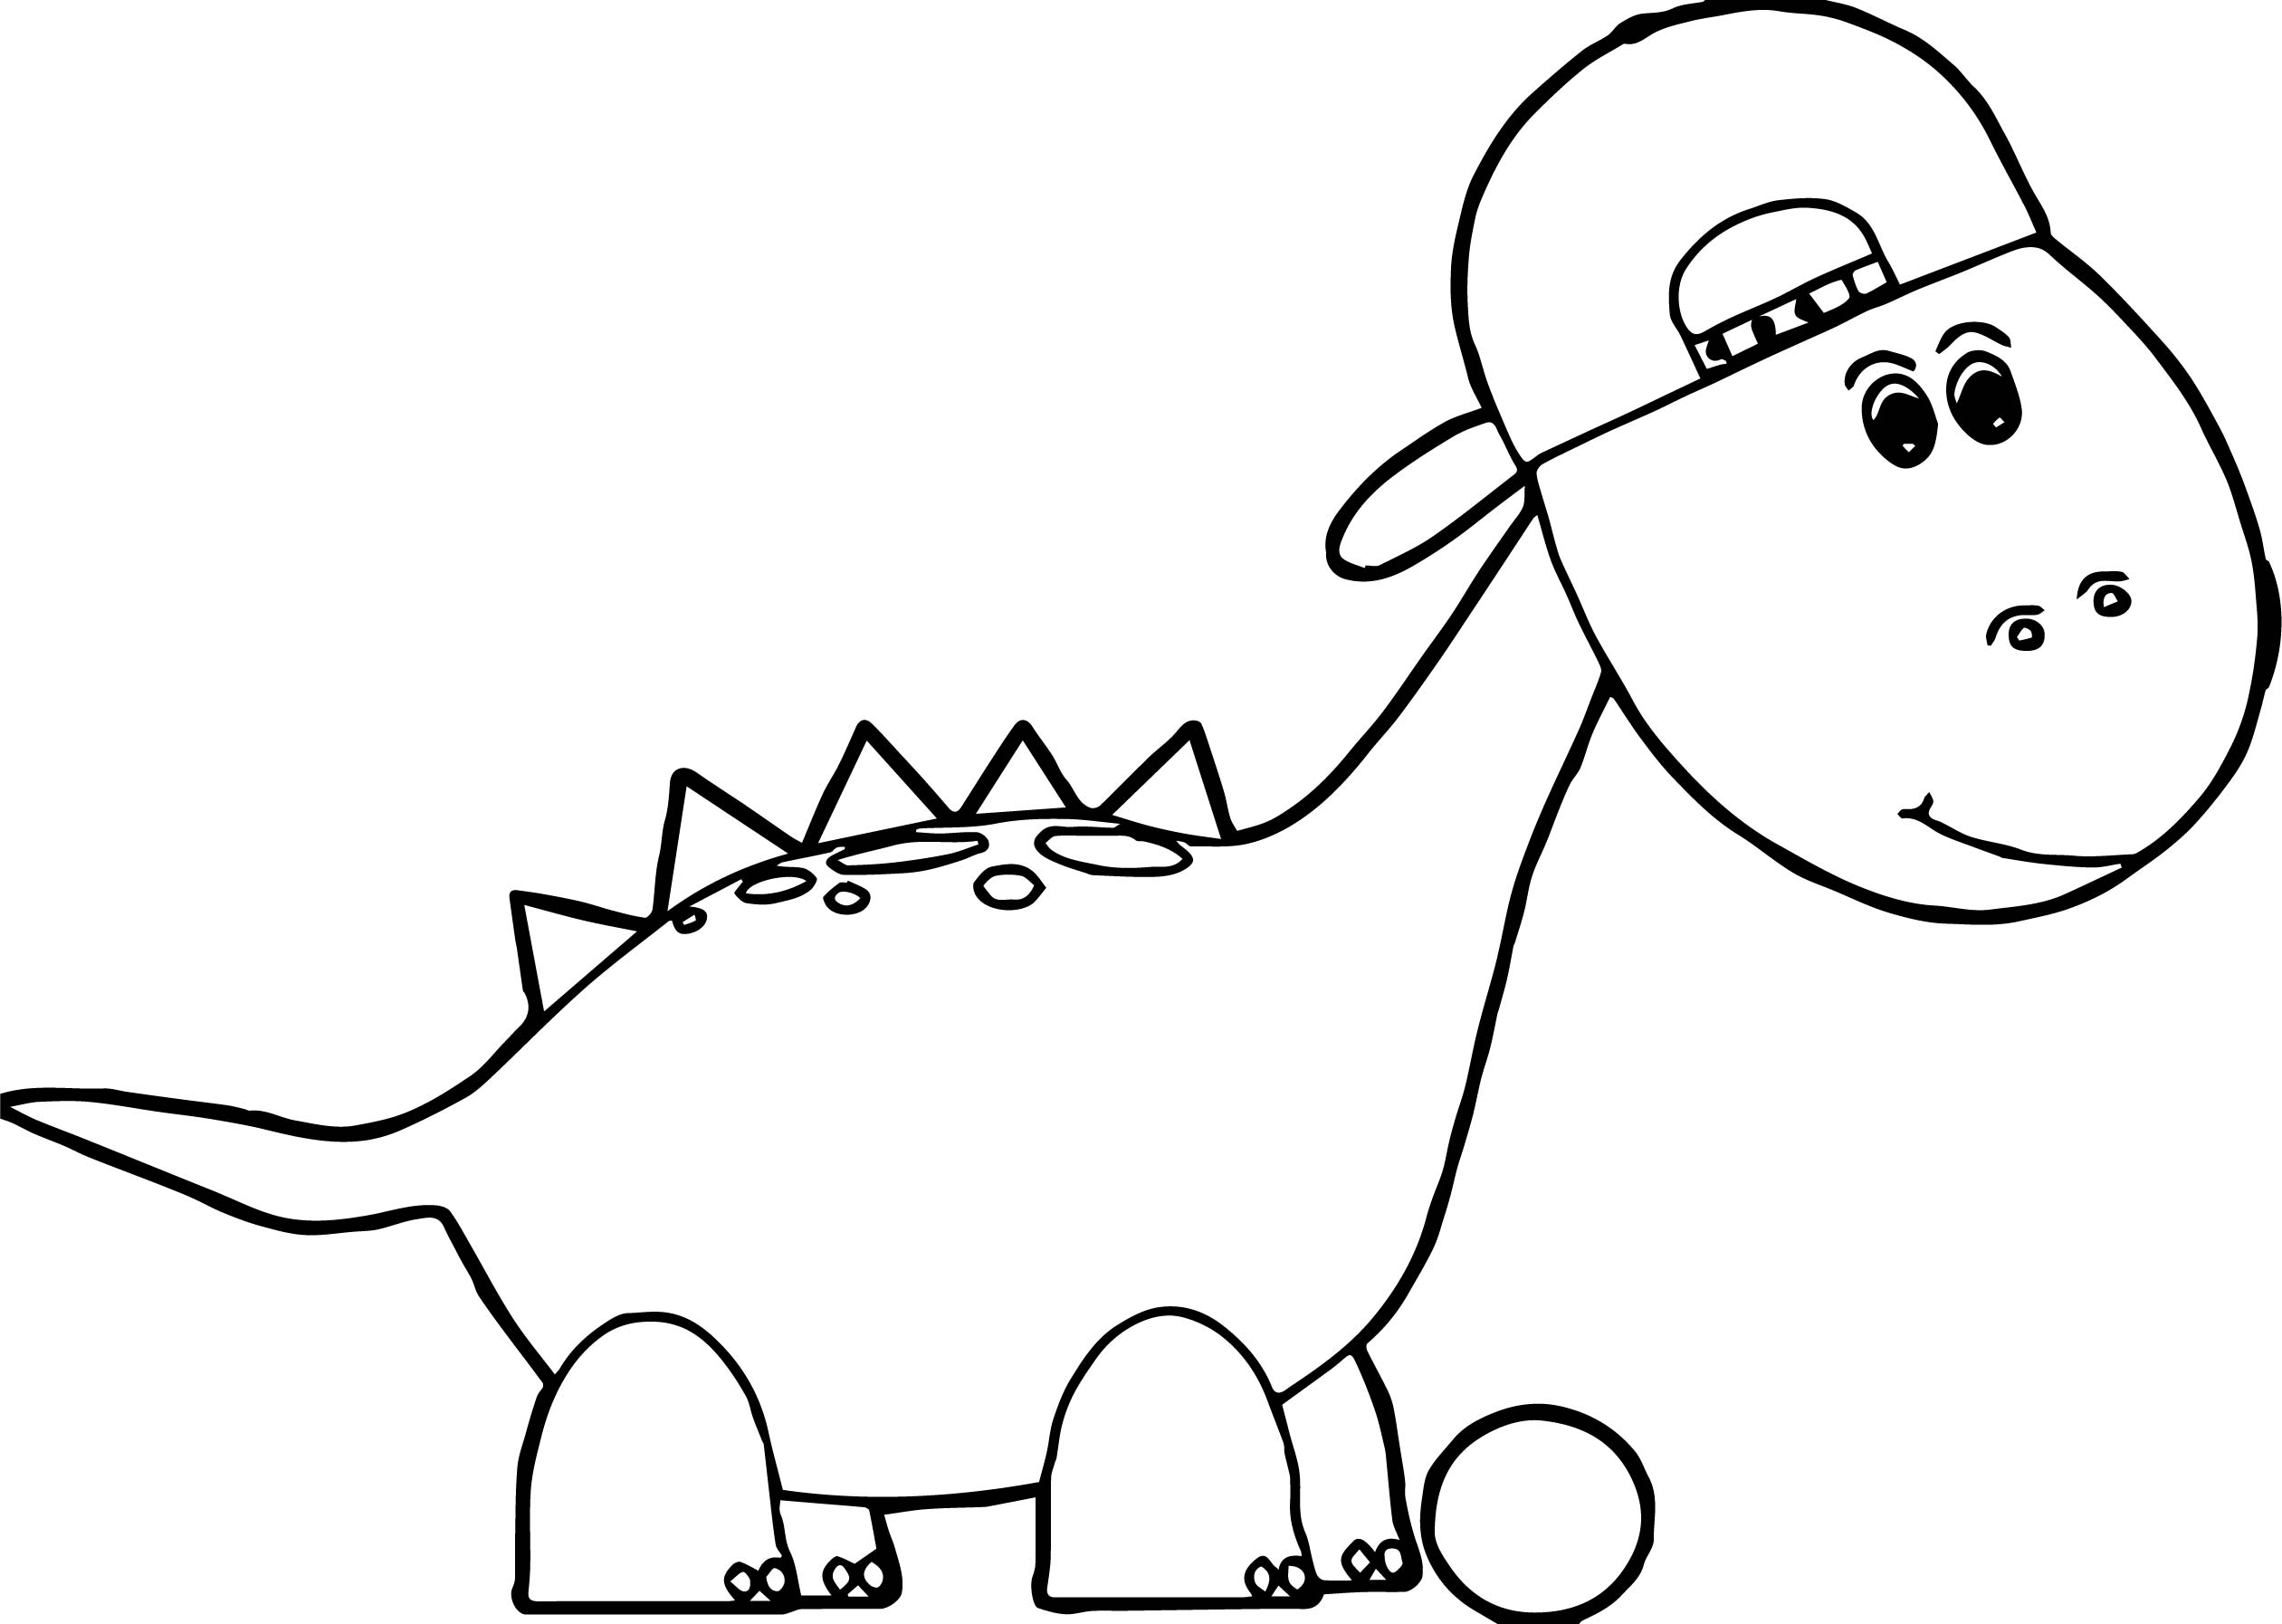 Dinosaur Coloring Pages Coloring Page Dinosaur Coloring Pages Page Ankylosaurus 34